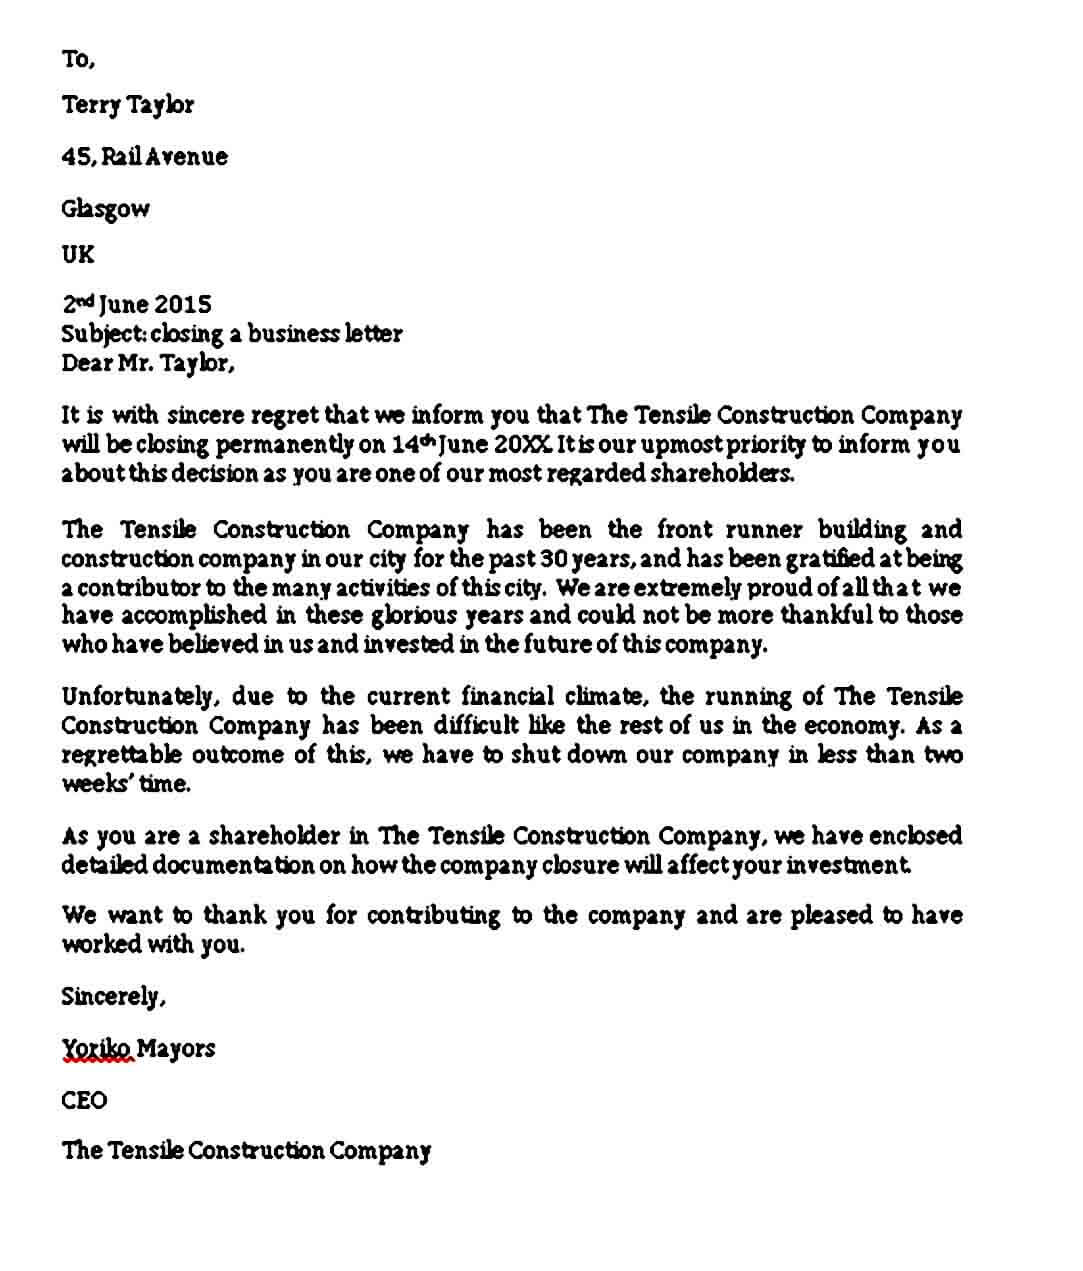 Sample Closing Business Letter Format